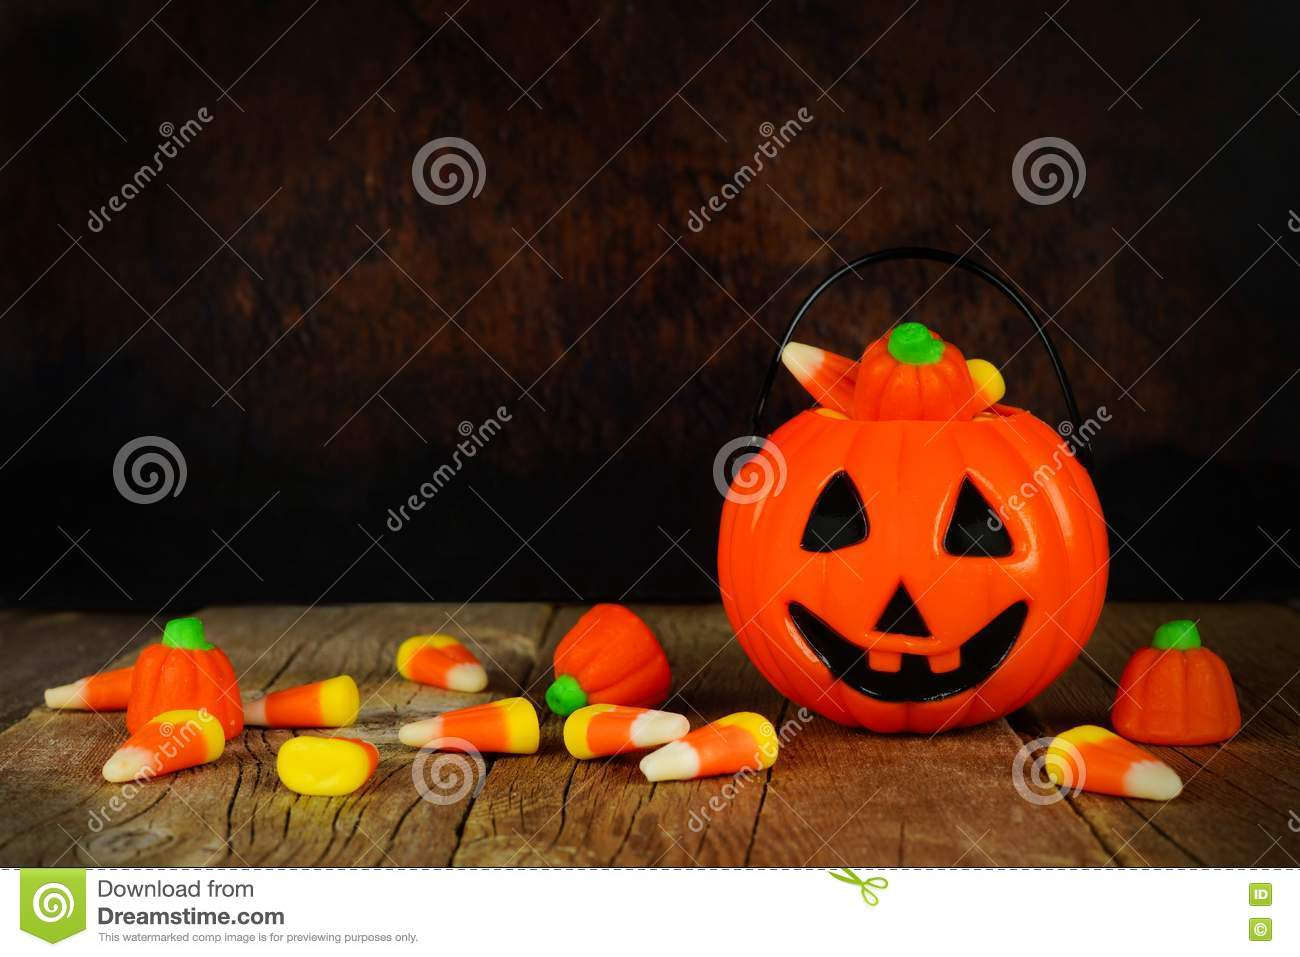 halloween jack-o-lantern candy holder with orange and black